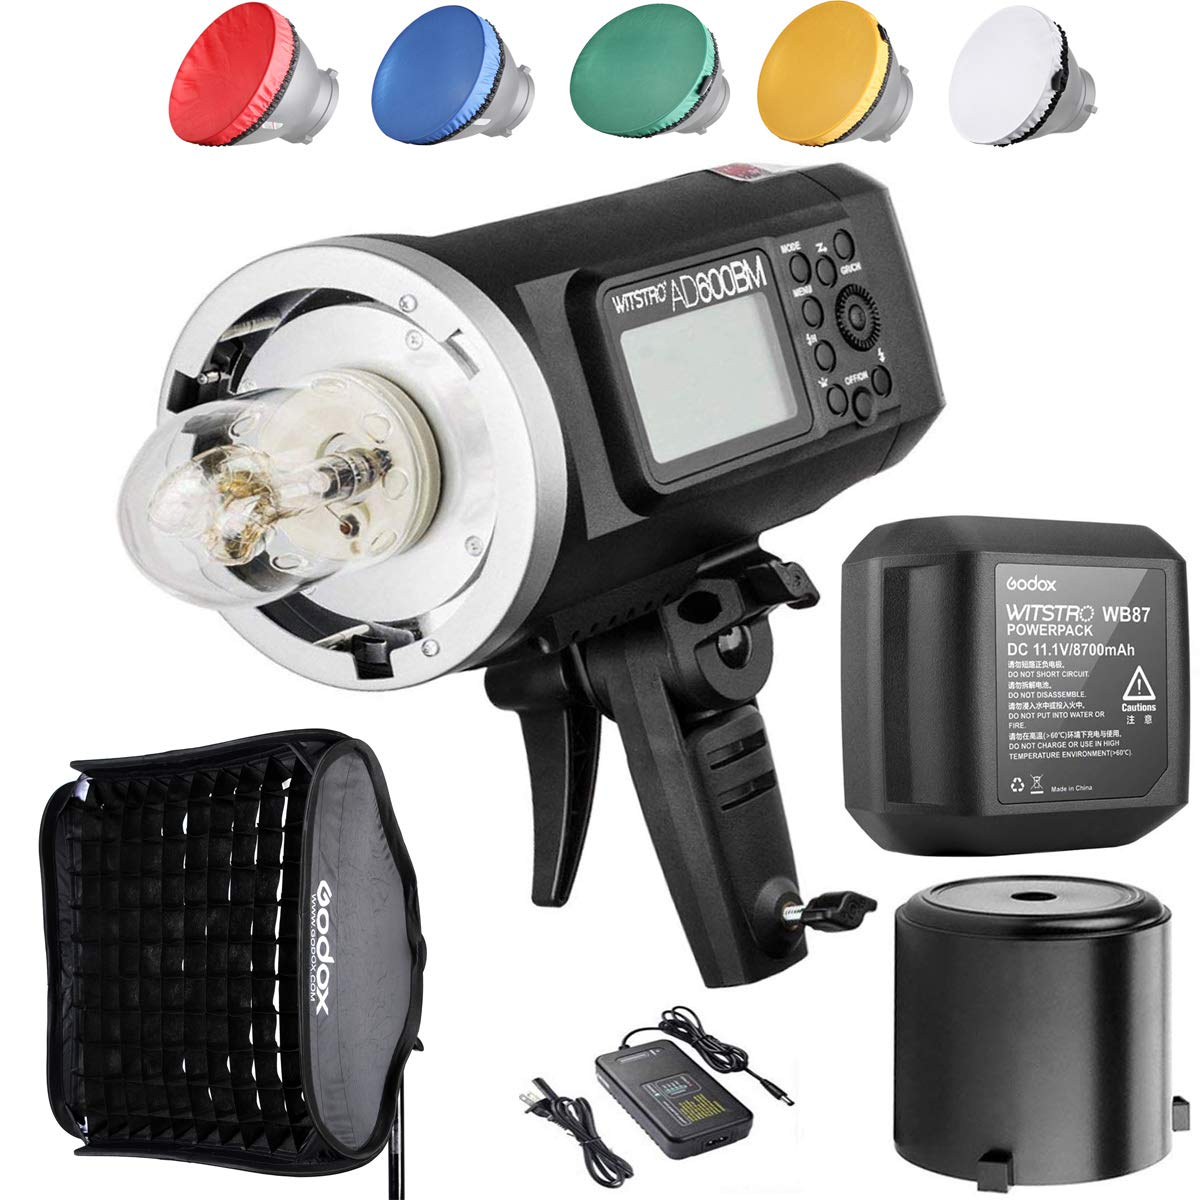 Godox AD600BM Bowens Mount 600Ws GN87 High Speed Sync Outdoor Flash Strobe Light with 80CMX80CM Softbox, 8700mAh Battery to Provide 500 Full Power Flashes and Recycle in 0.01-2.5 Second by Godox